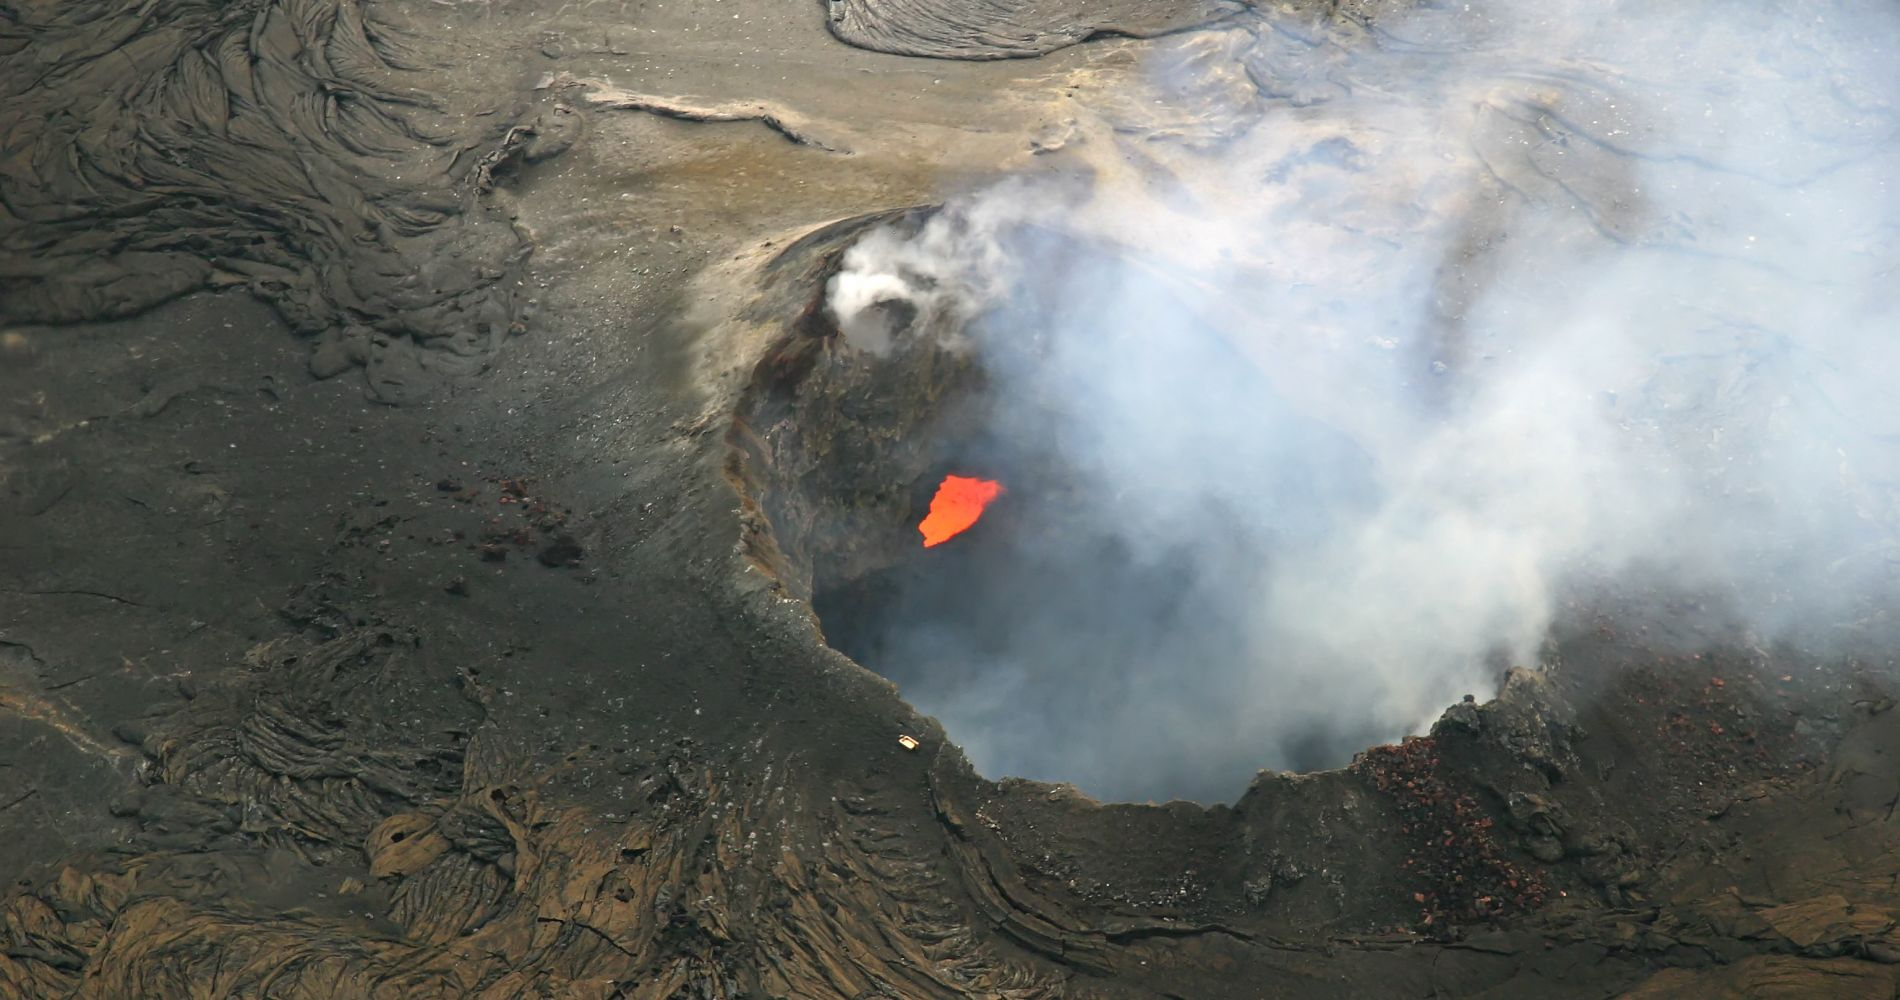 Volcanoes and Waterfalls Helicopter Adventure from Hilo